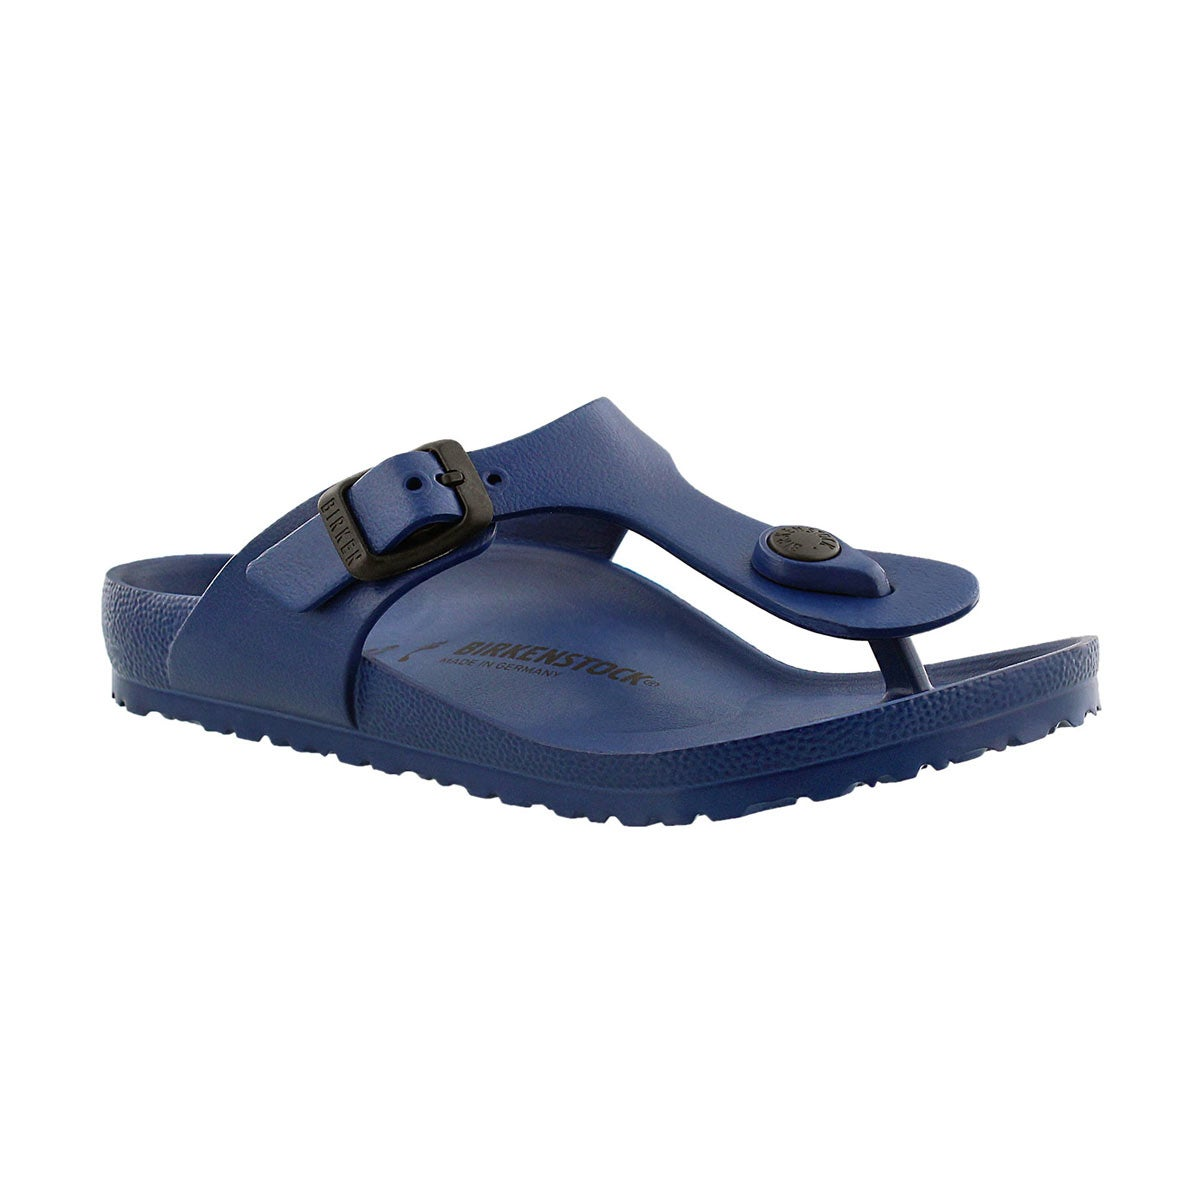 Girls' GIZEH EVA navy thong sandals